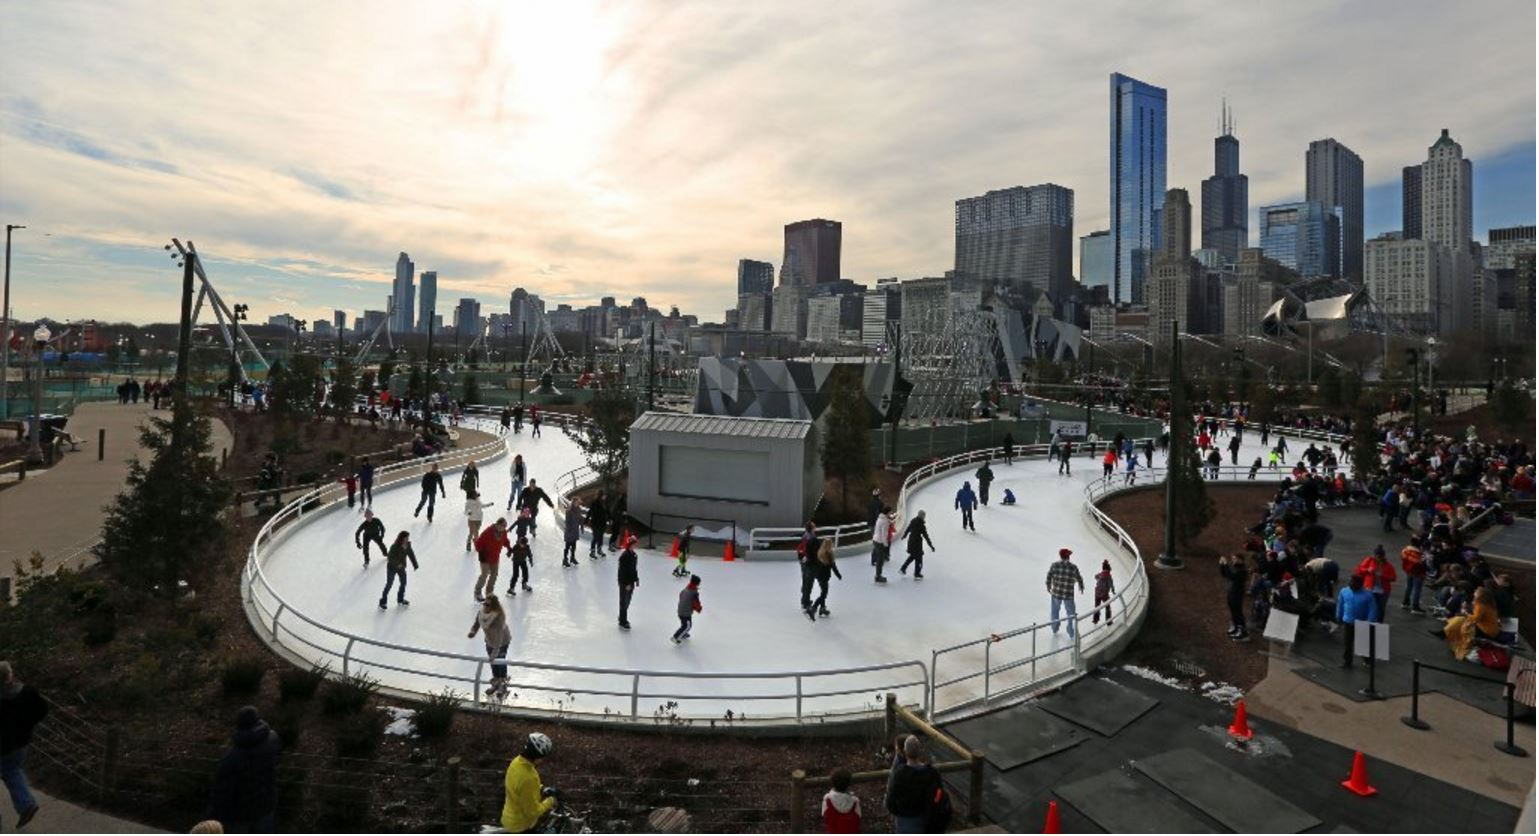 Maggie Daley Park ice skating